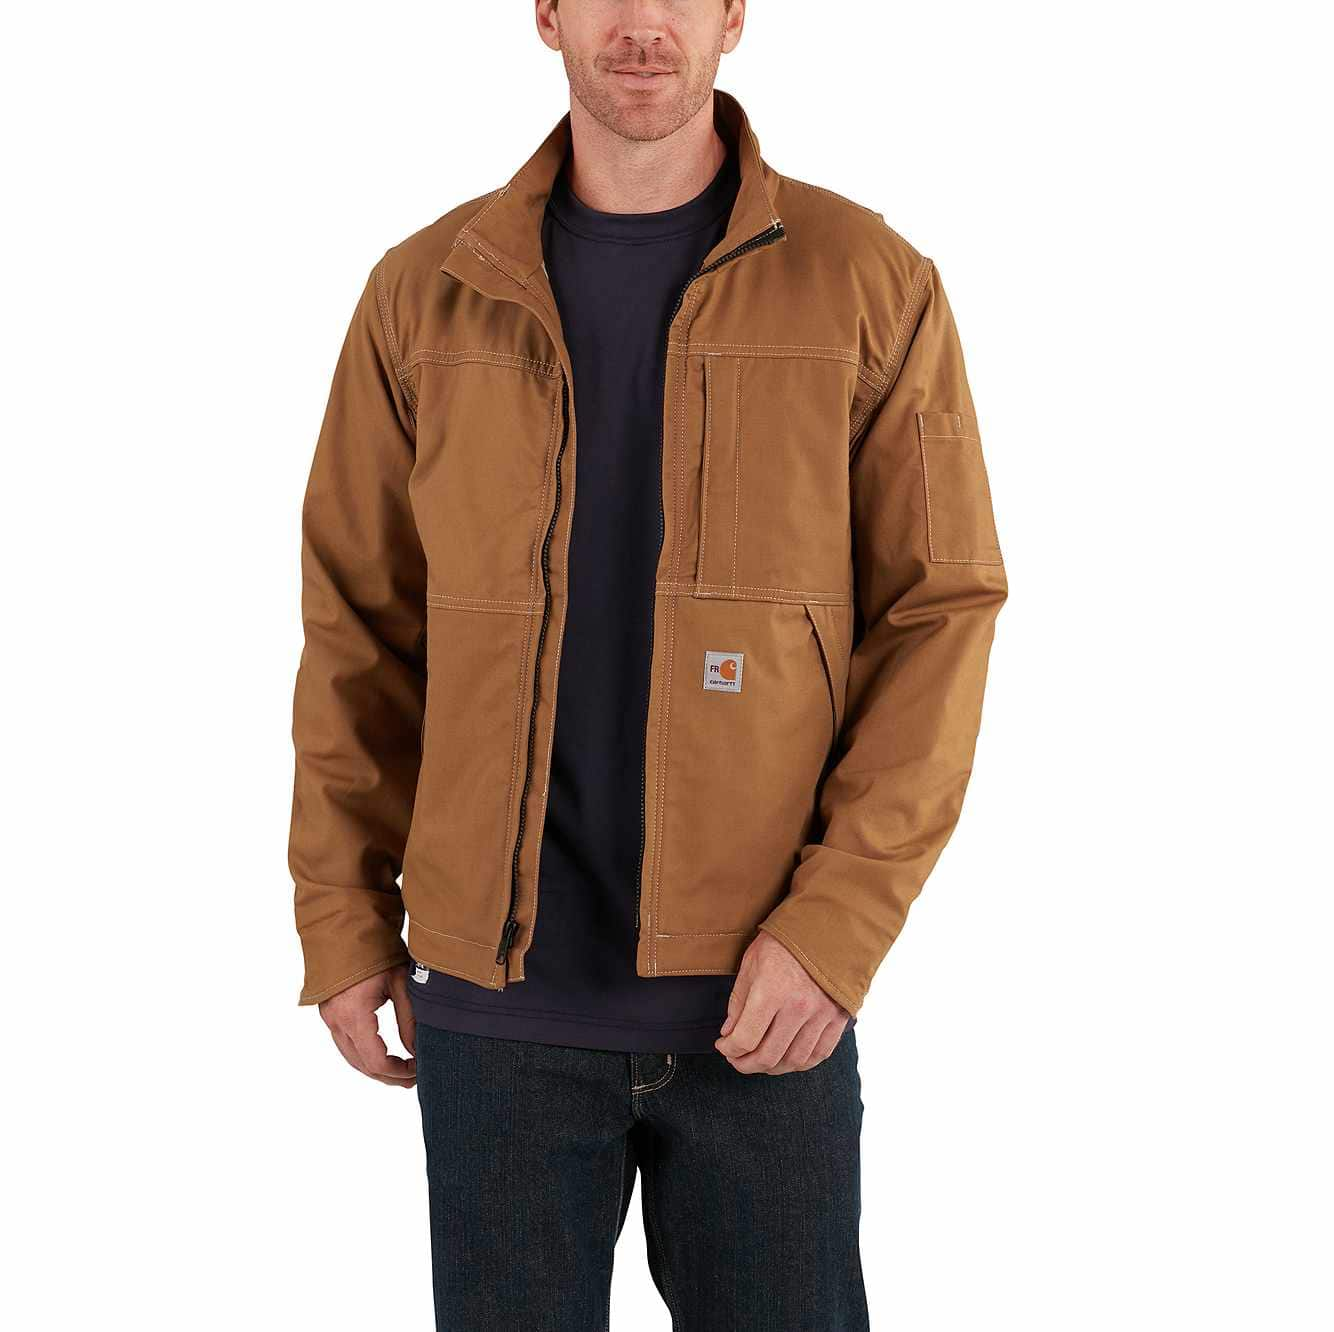 Picture of Full Swing® Quick Duck® Flame-Resistant Jacket in Carhartt Brown